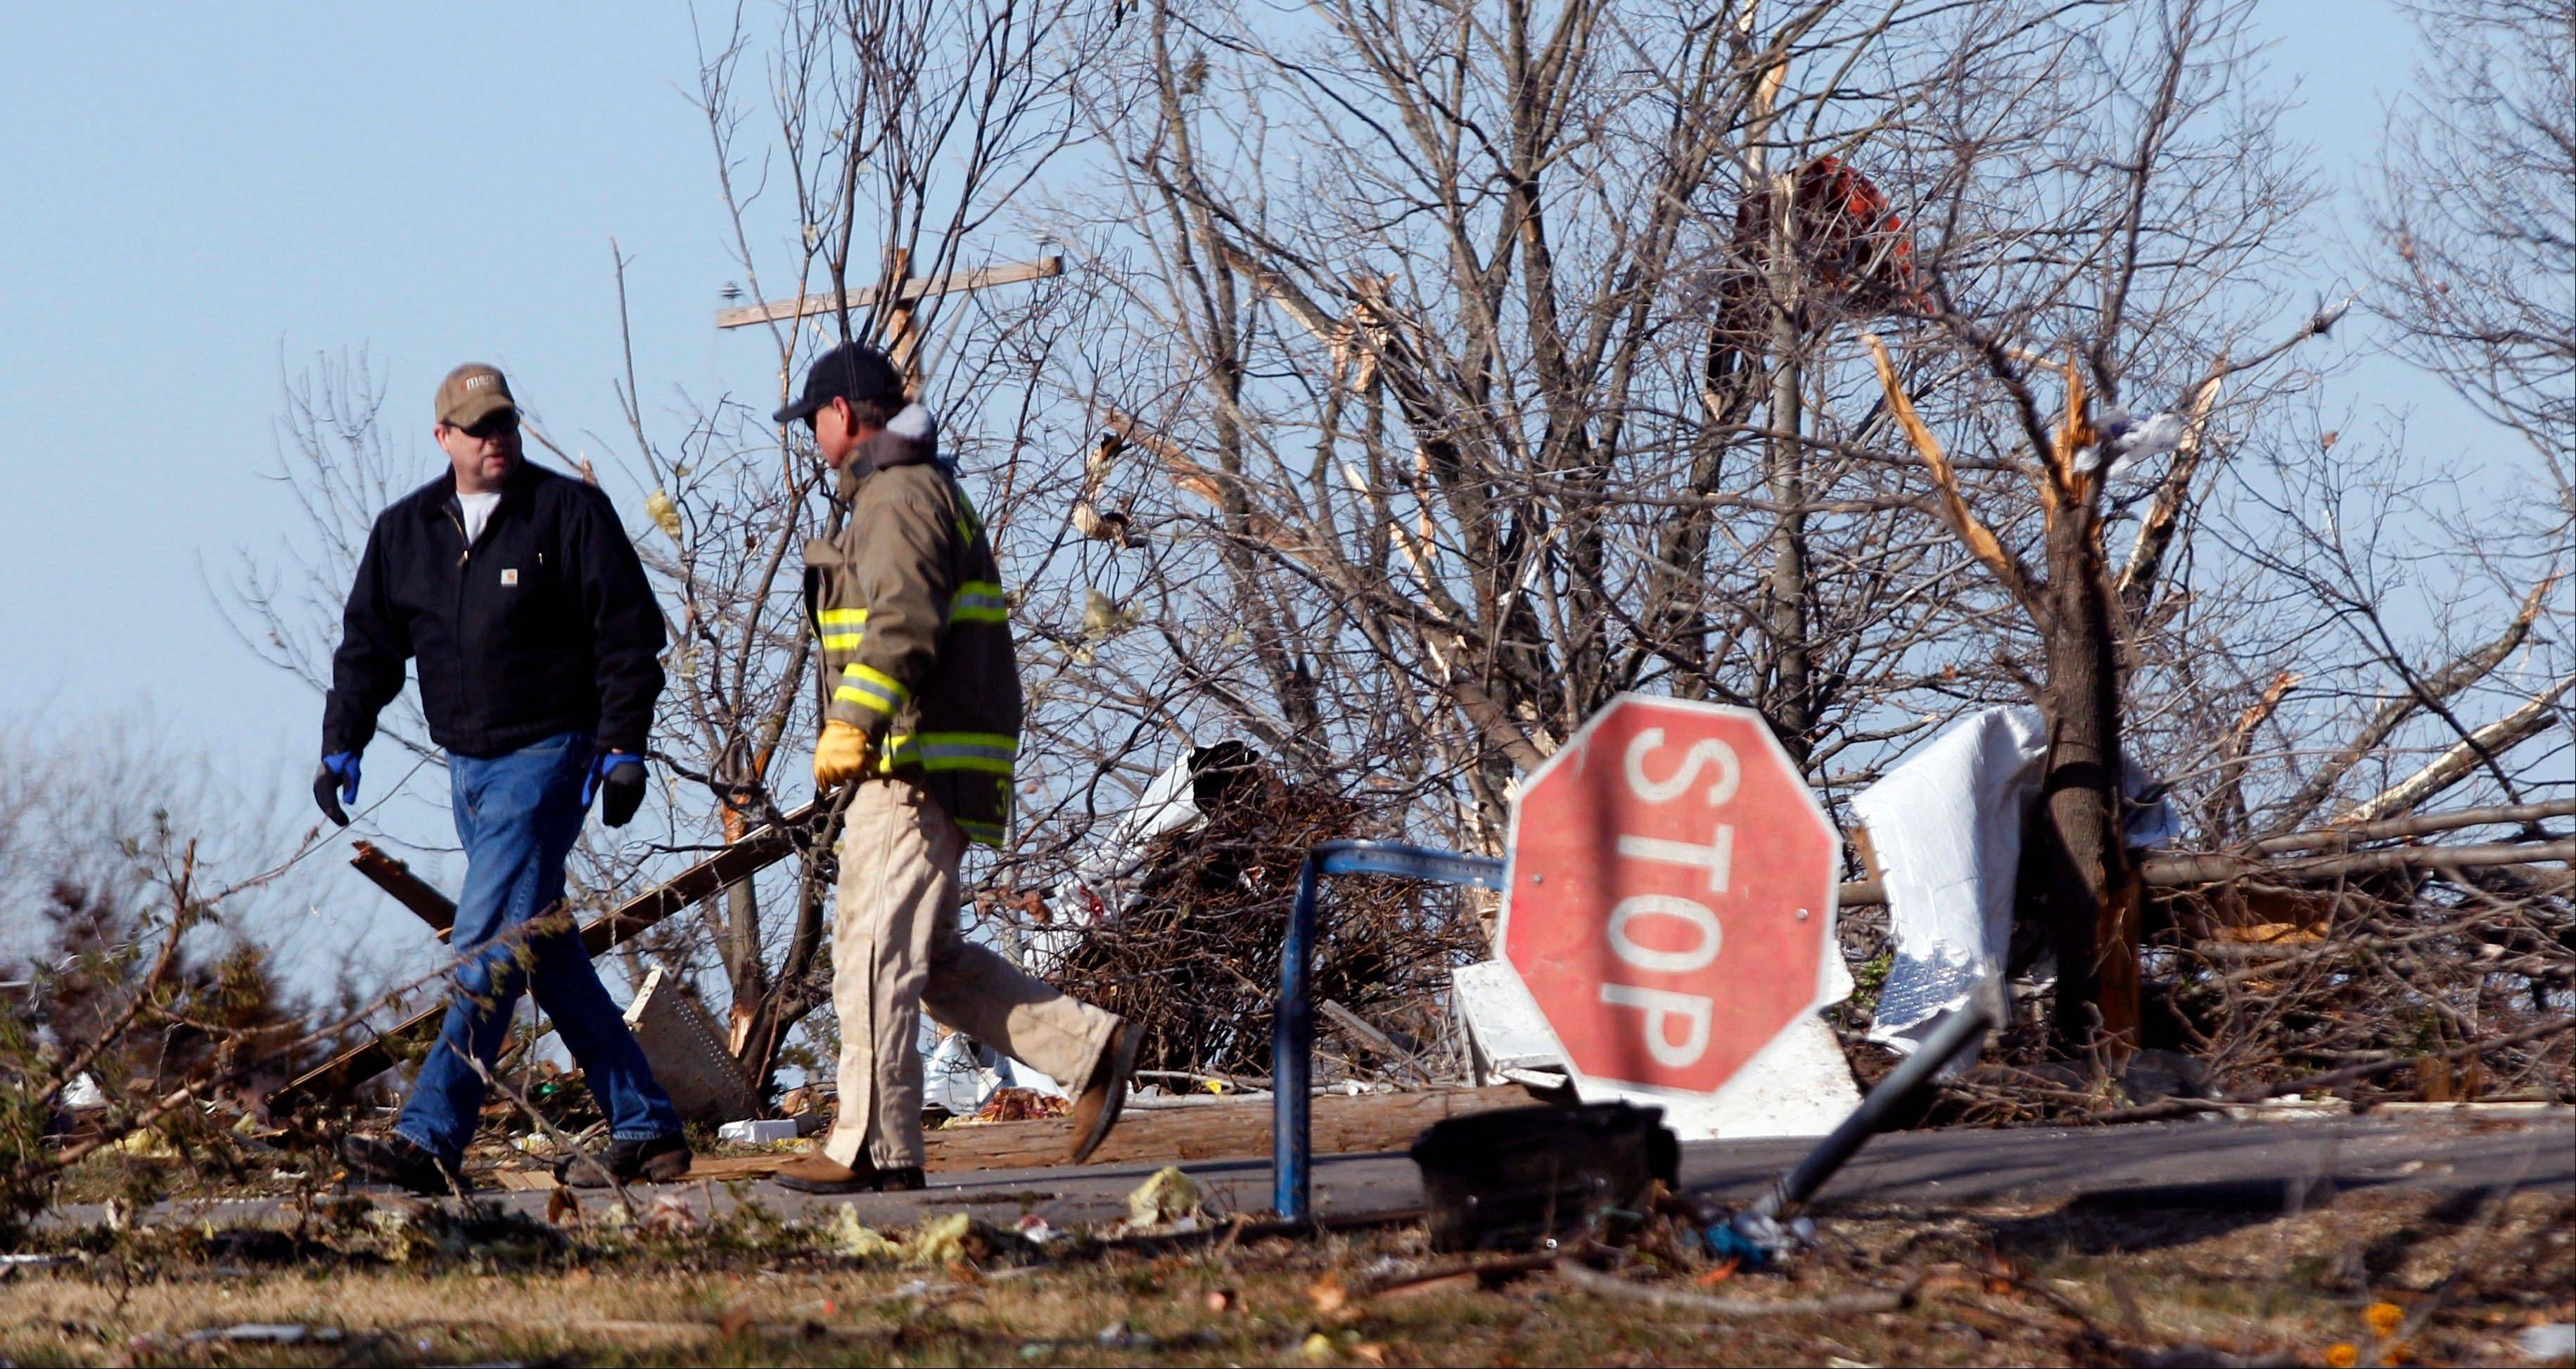 Volunteers walk past storm damage in Harveyville, Kan., Wednesday, Feb. 29, 2012. A powerful storm system lashed the Midwest early Wednesday, roughing up the country music resort city of Branson and laying waste to the small town in Kansas.